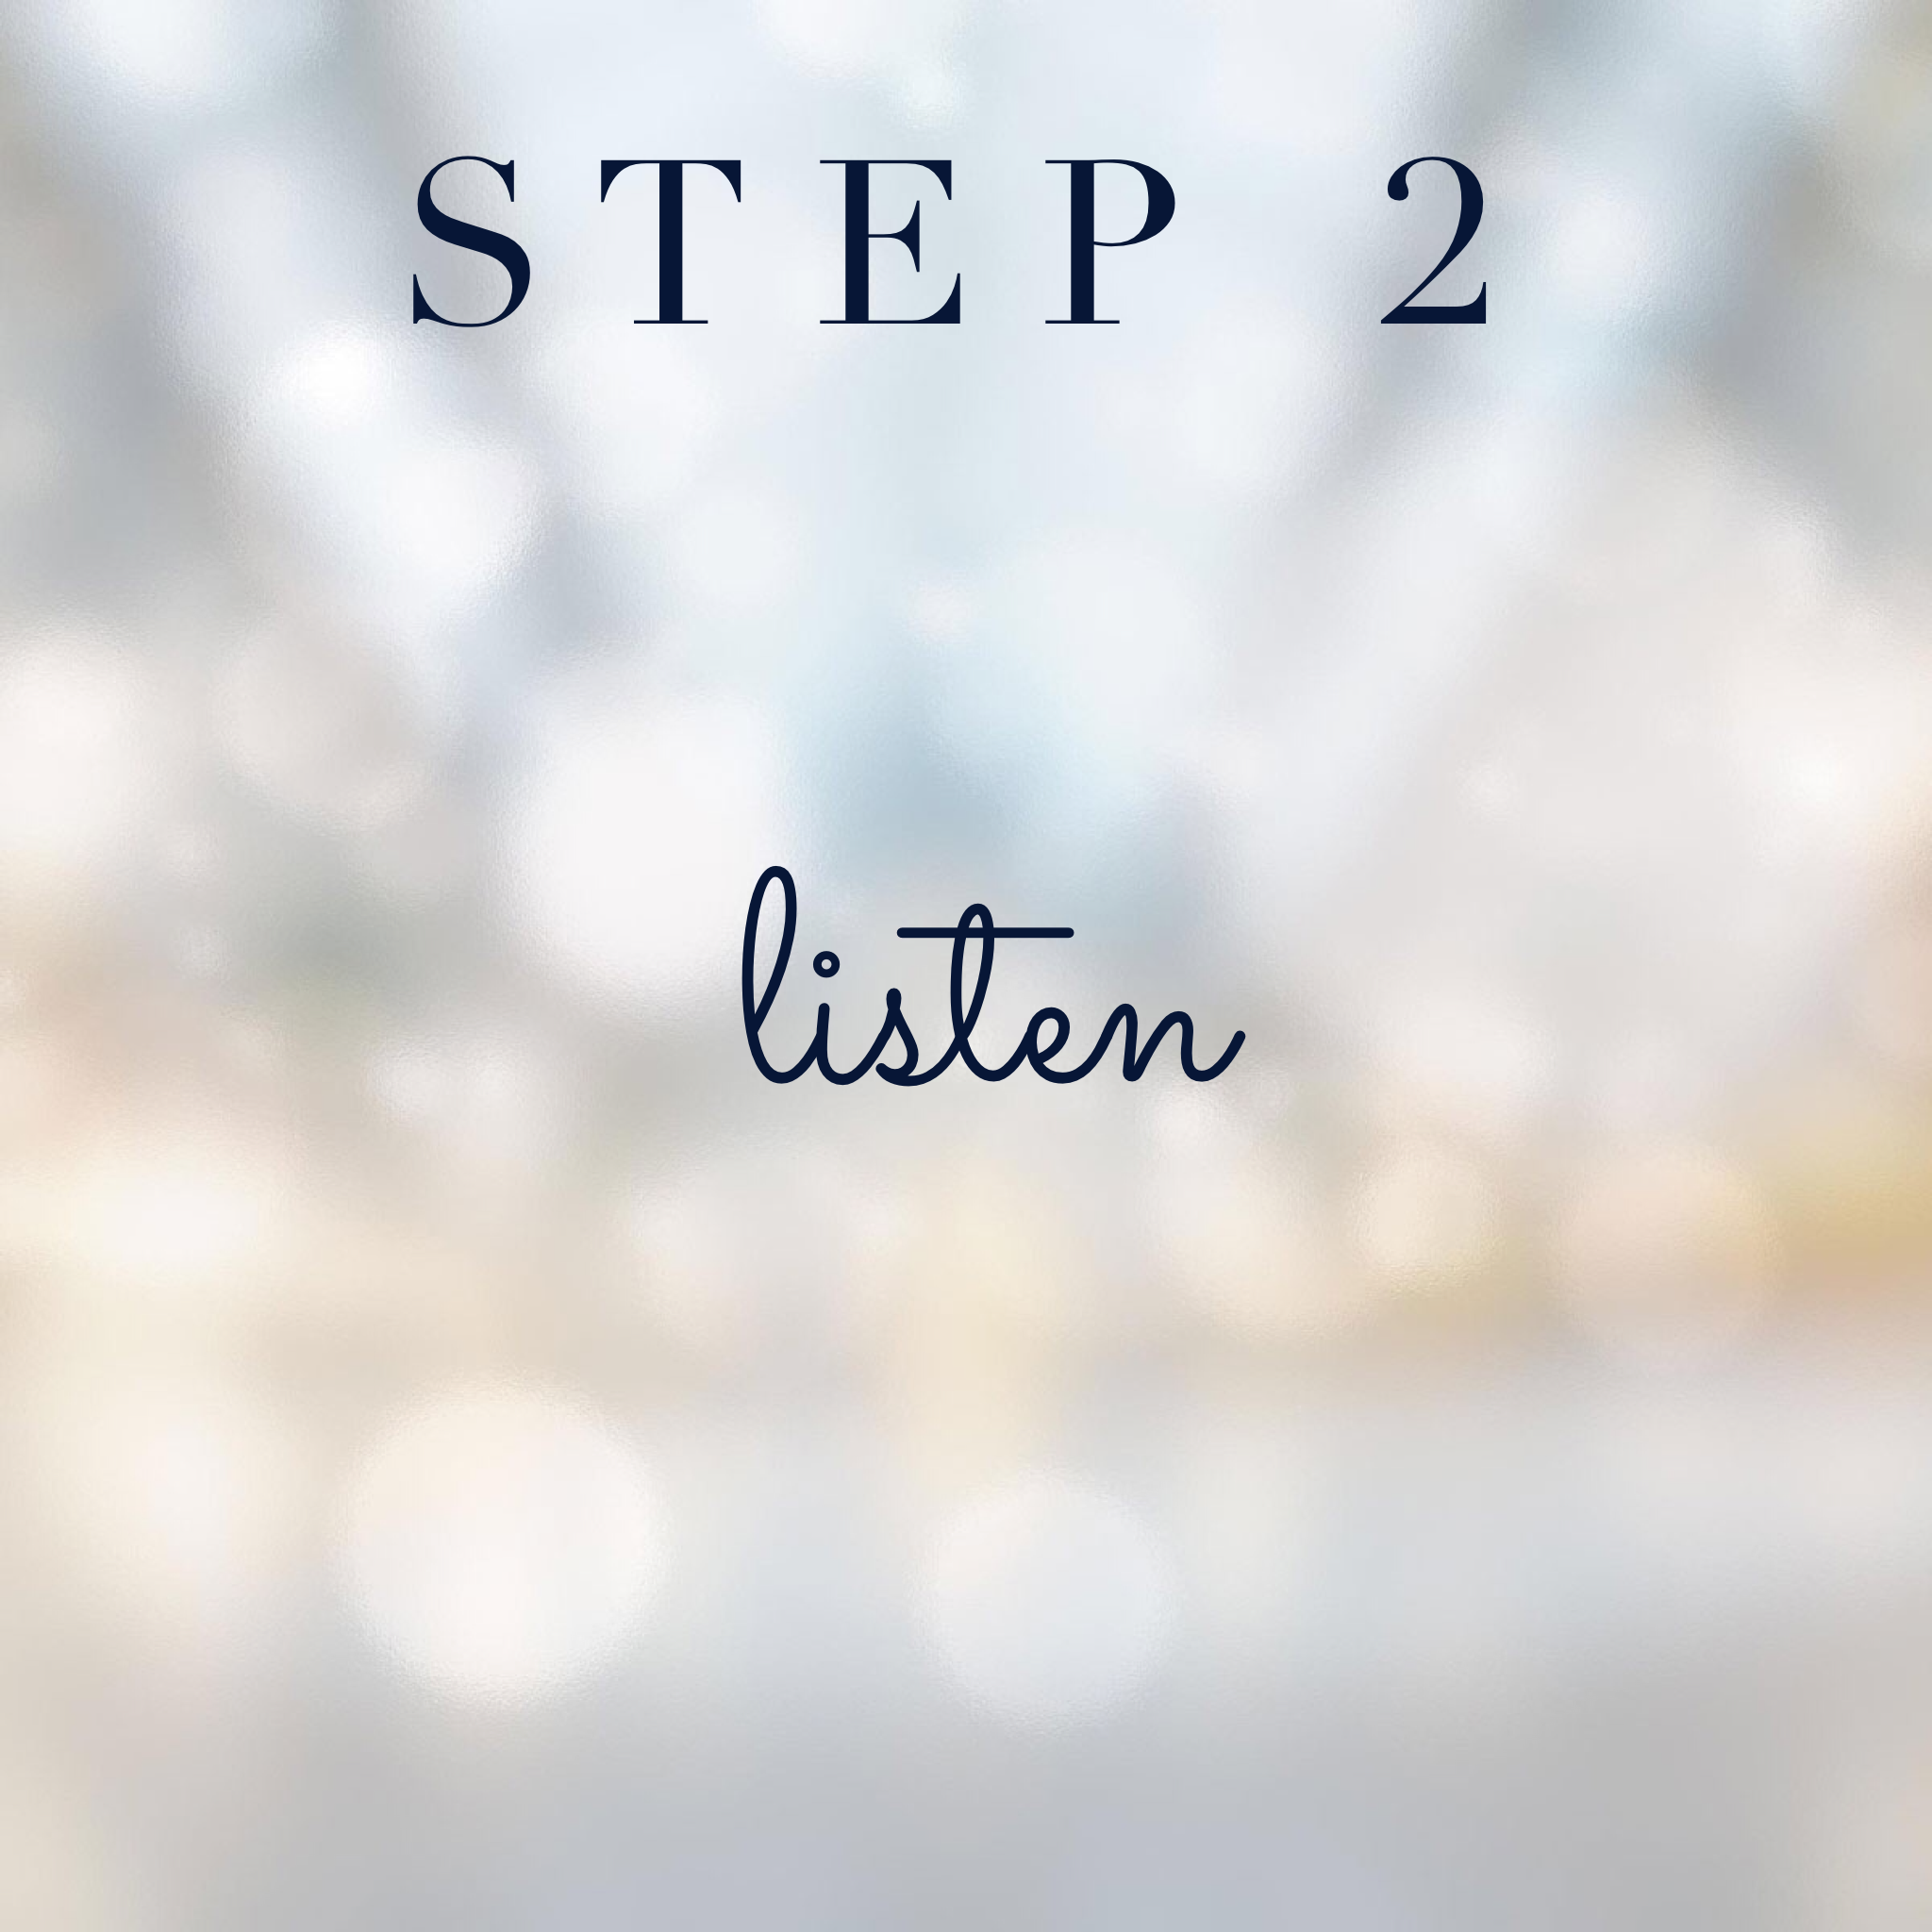 Connect with your spirit guides step 2: Listen